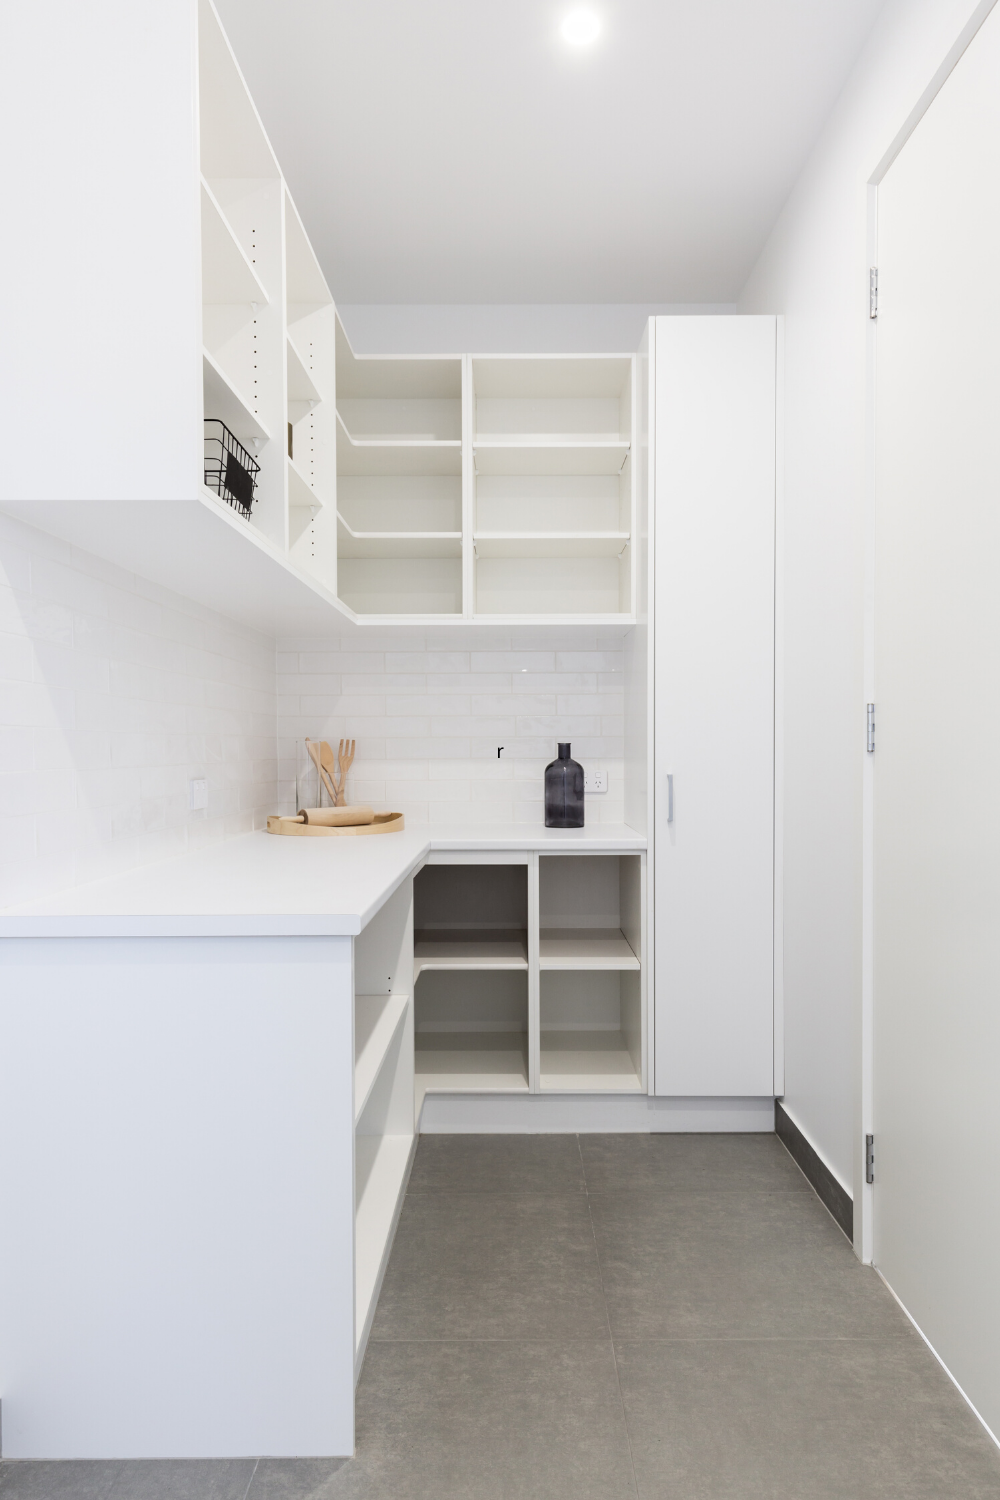 Pantry Organization 101: Purge + Clean Your Pantry